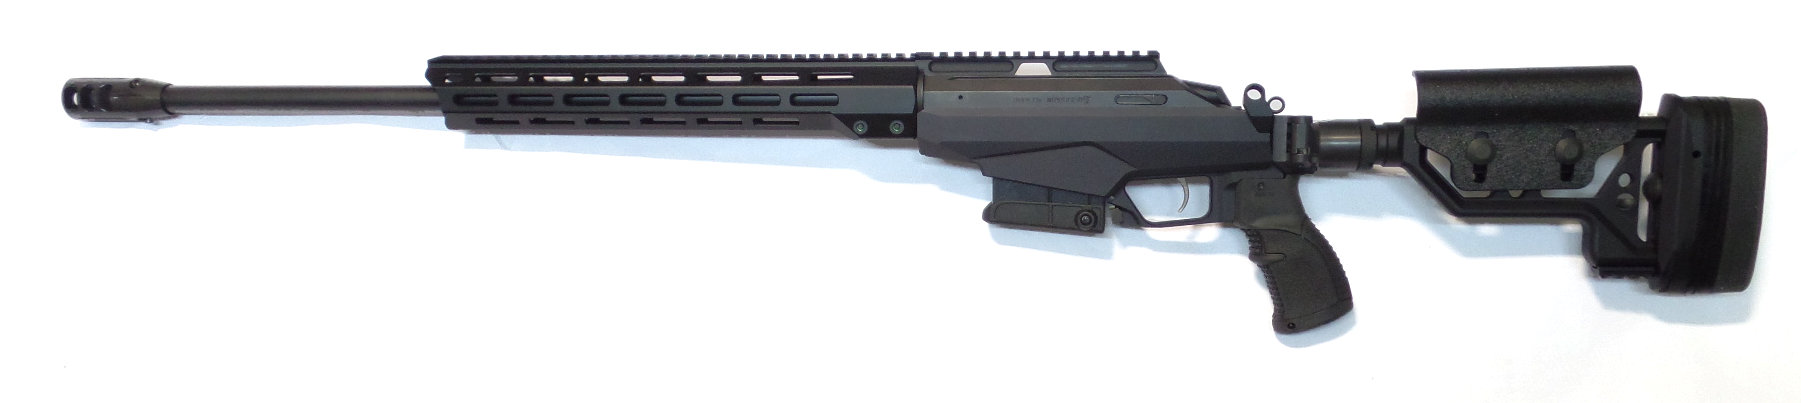 TIKKA T3x TACtical A1 calibre.308W